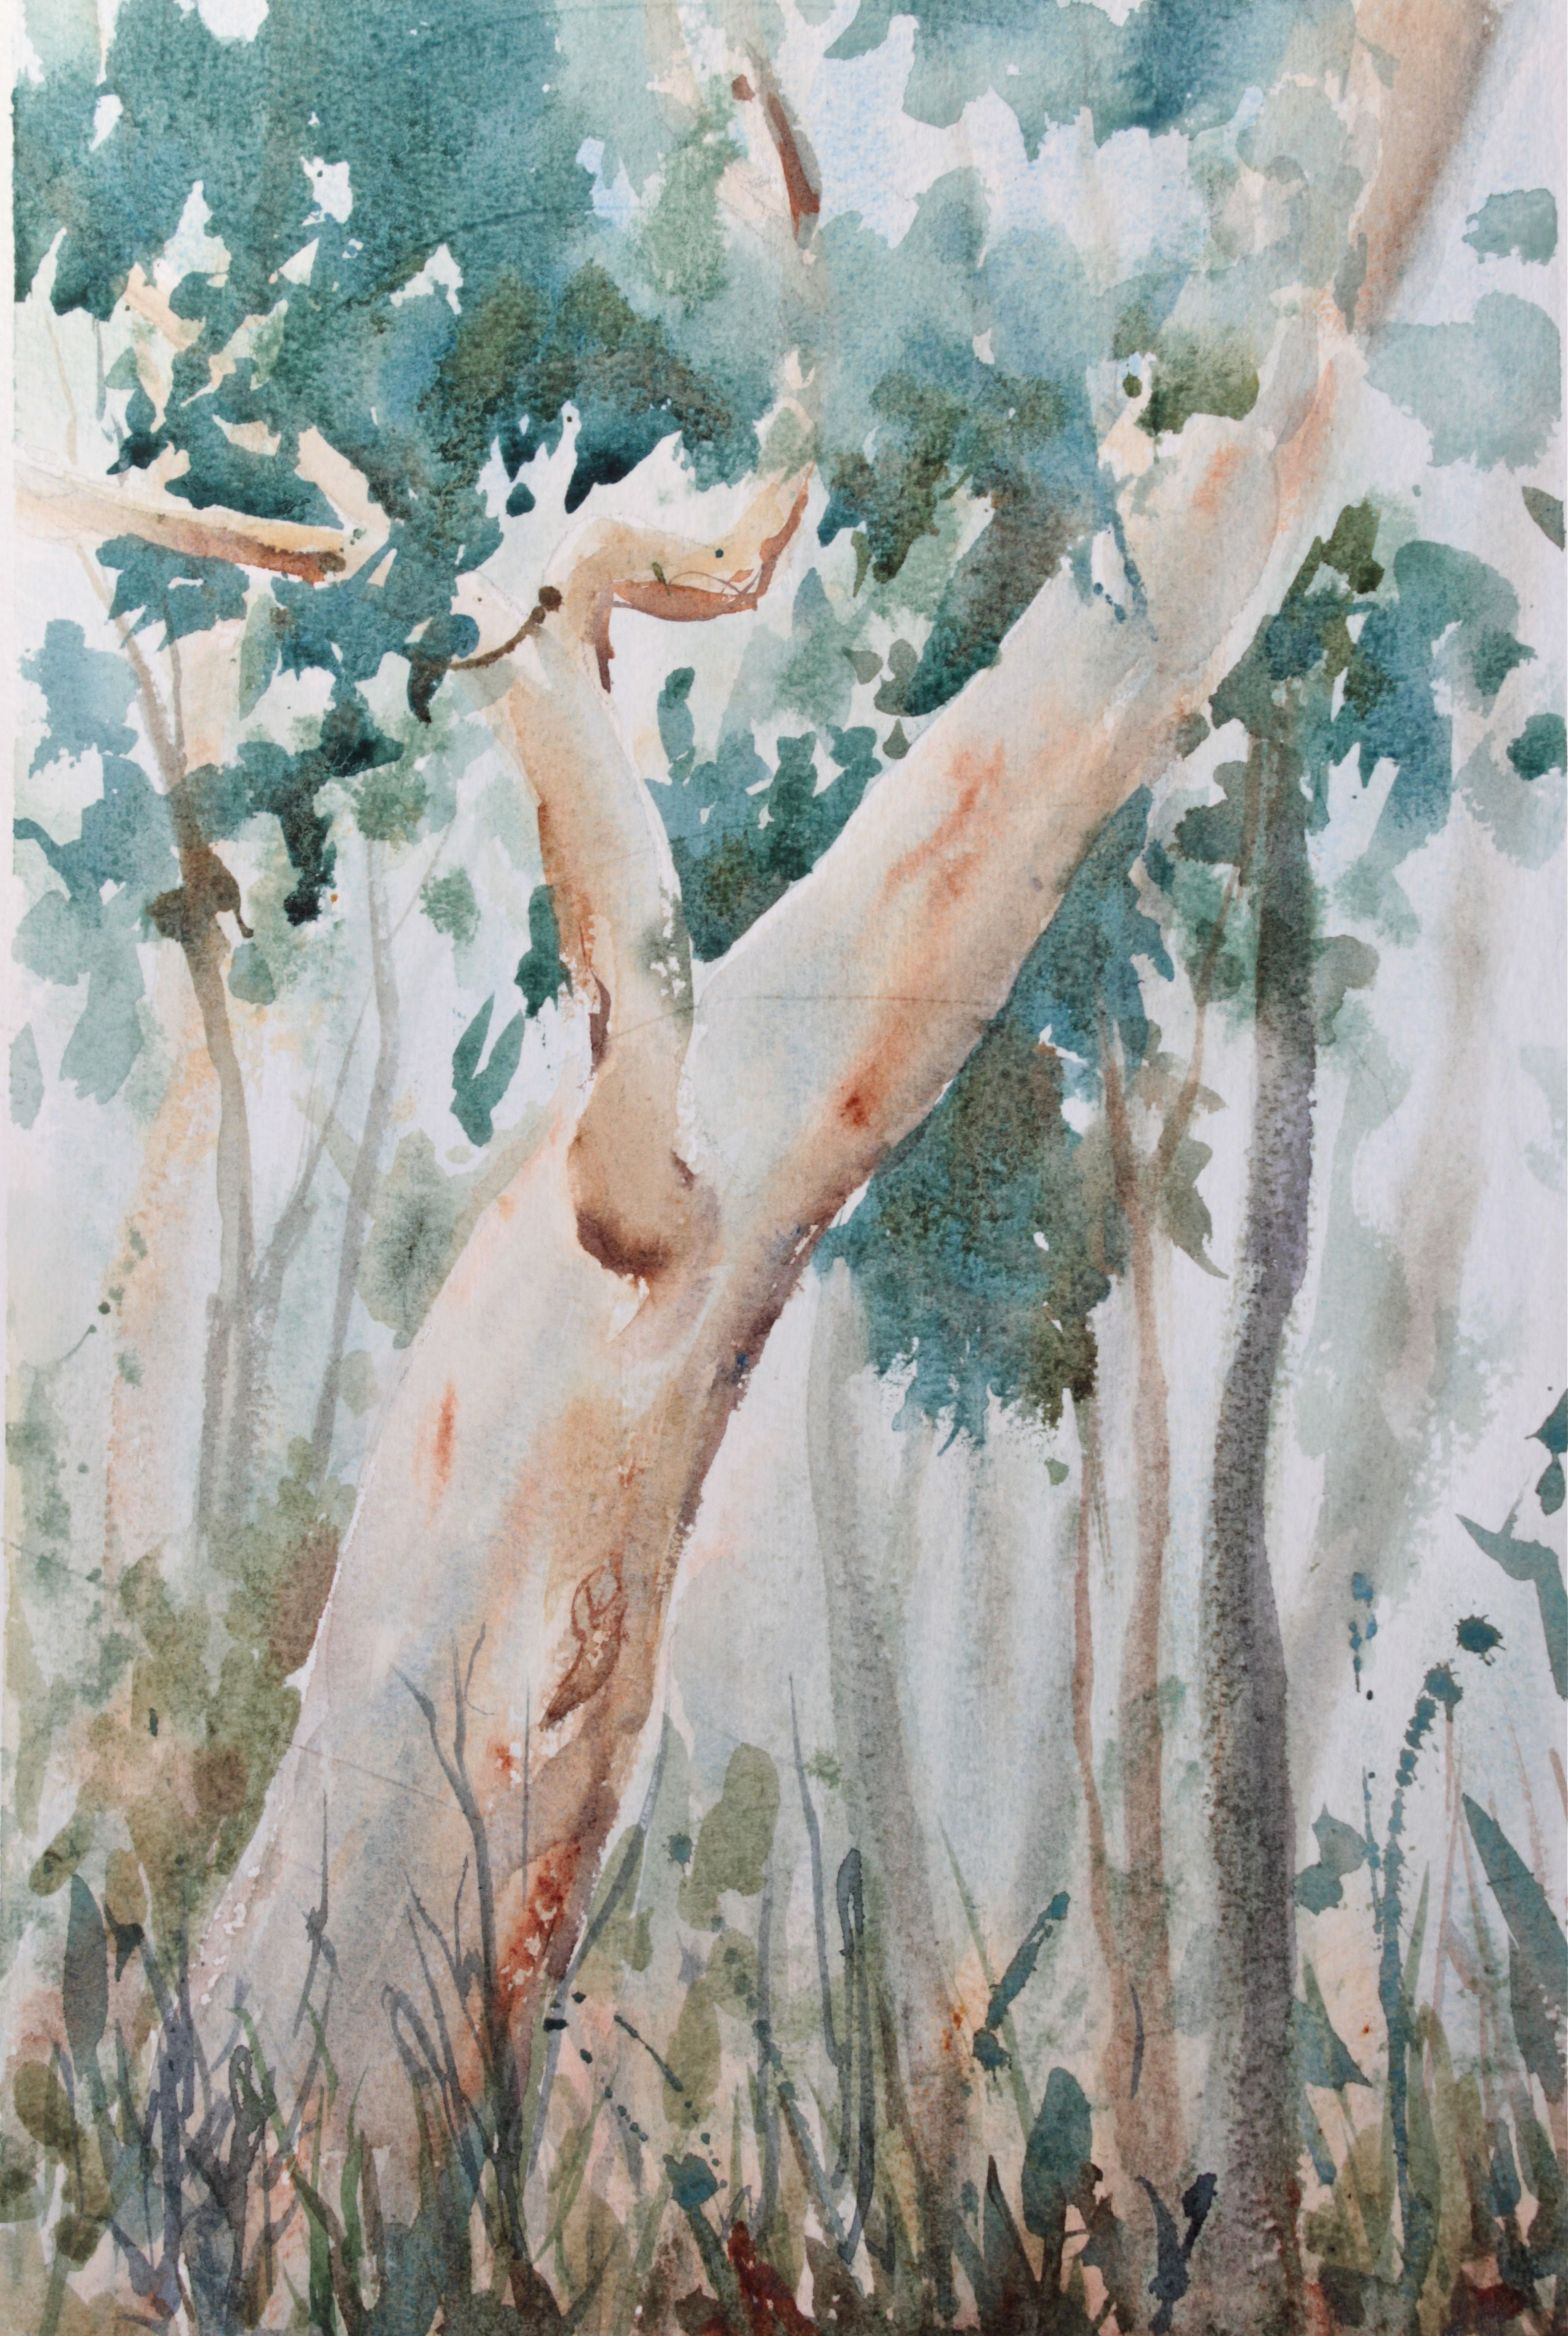 Watercolours St. Ives bushland debiriley.com